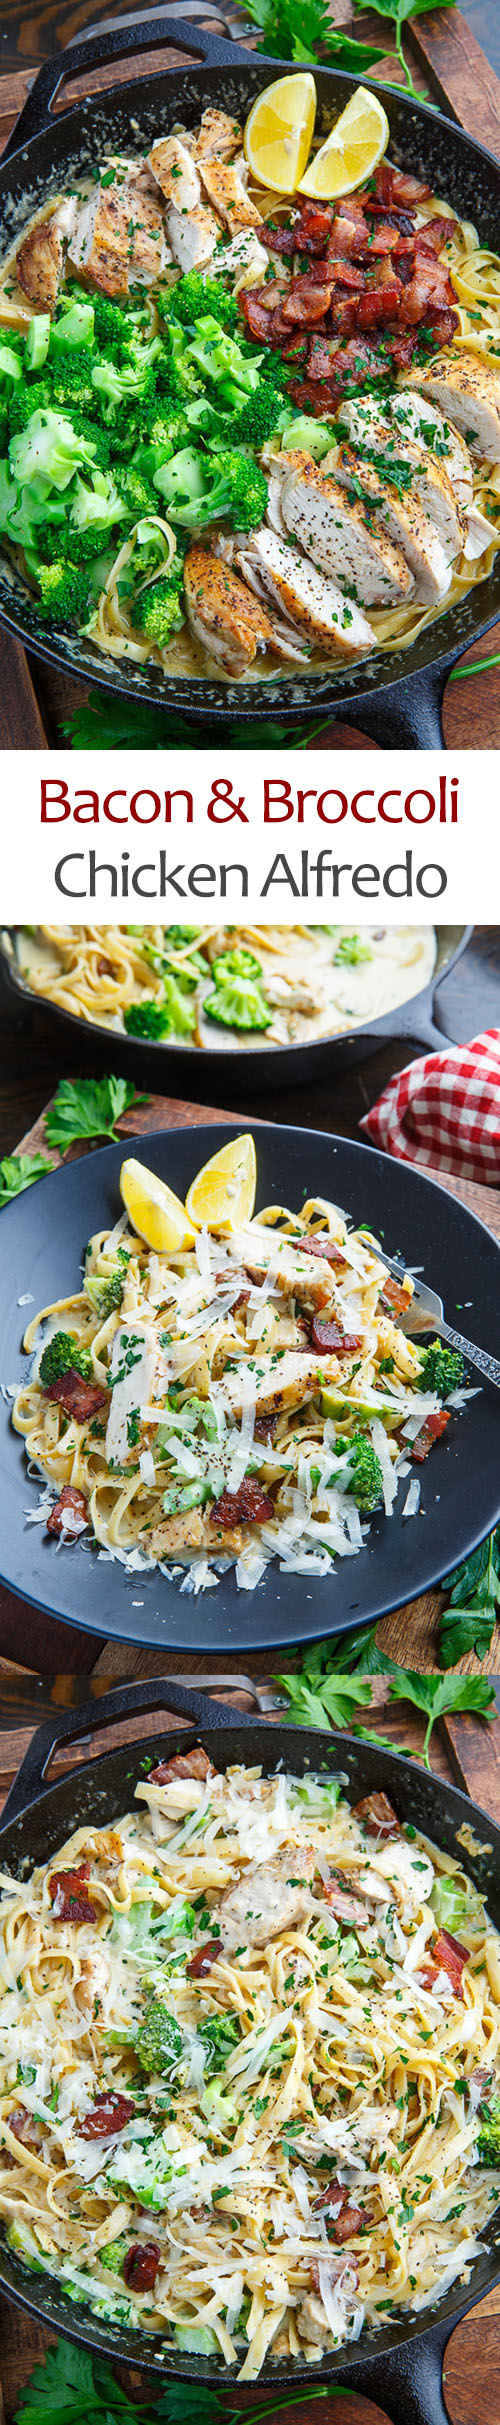 Broccoli and Bacon Chicken Alfredo Linguine